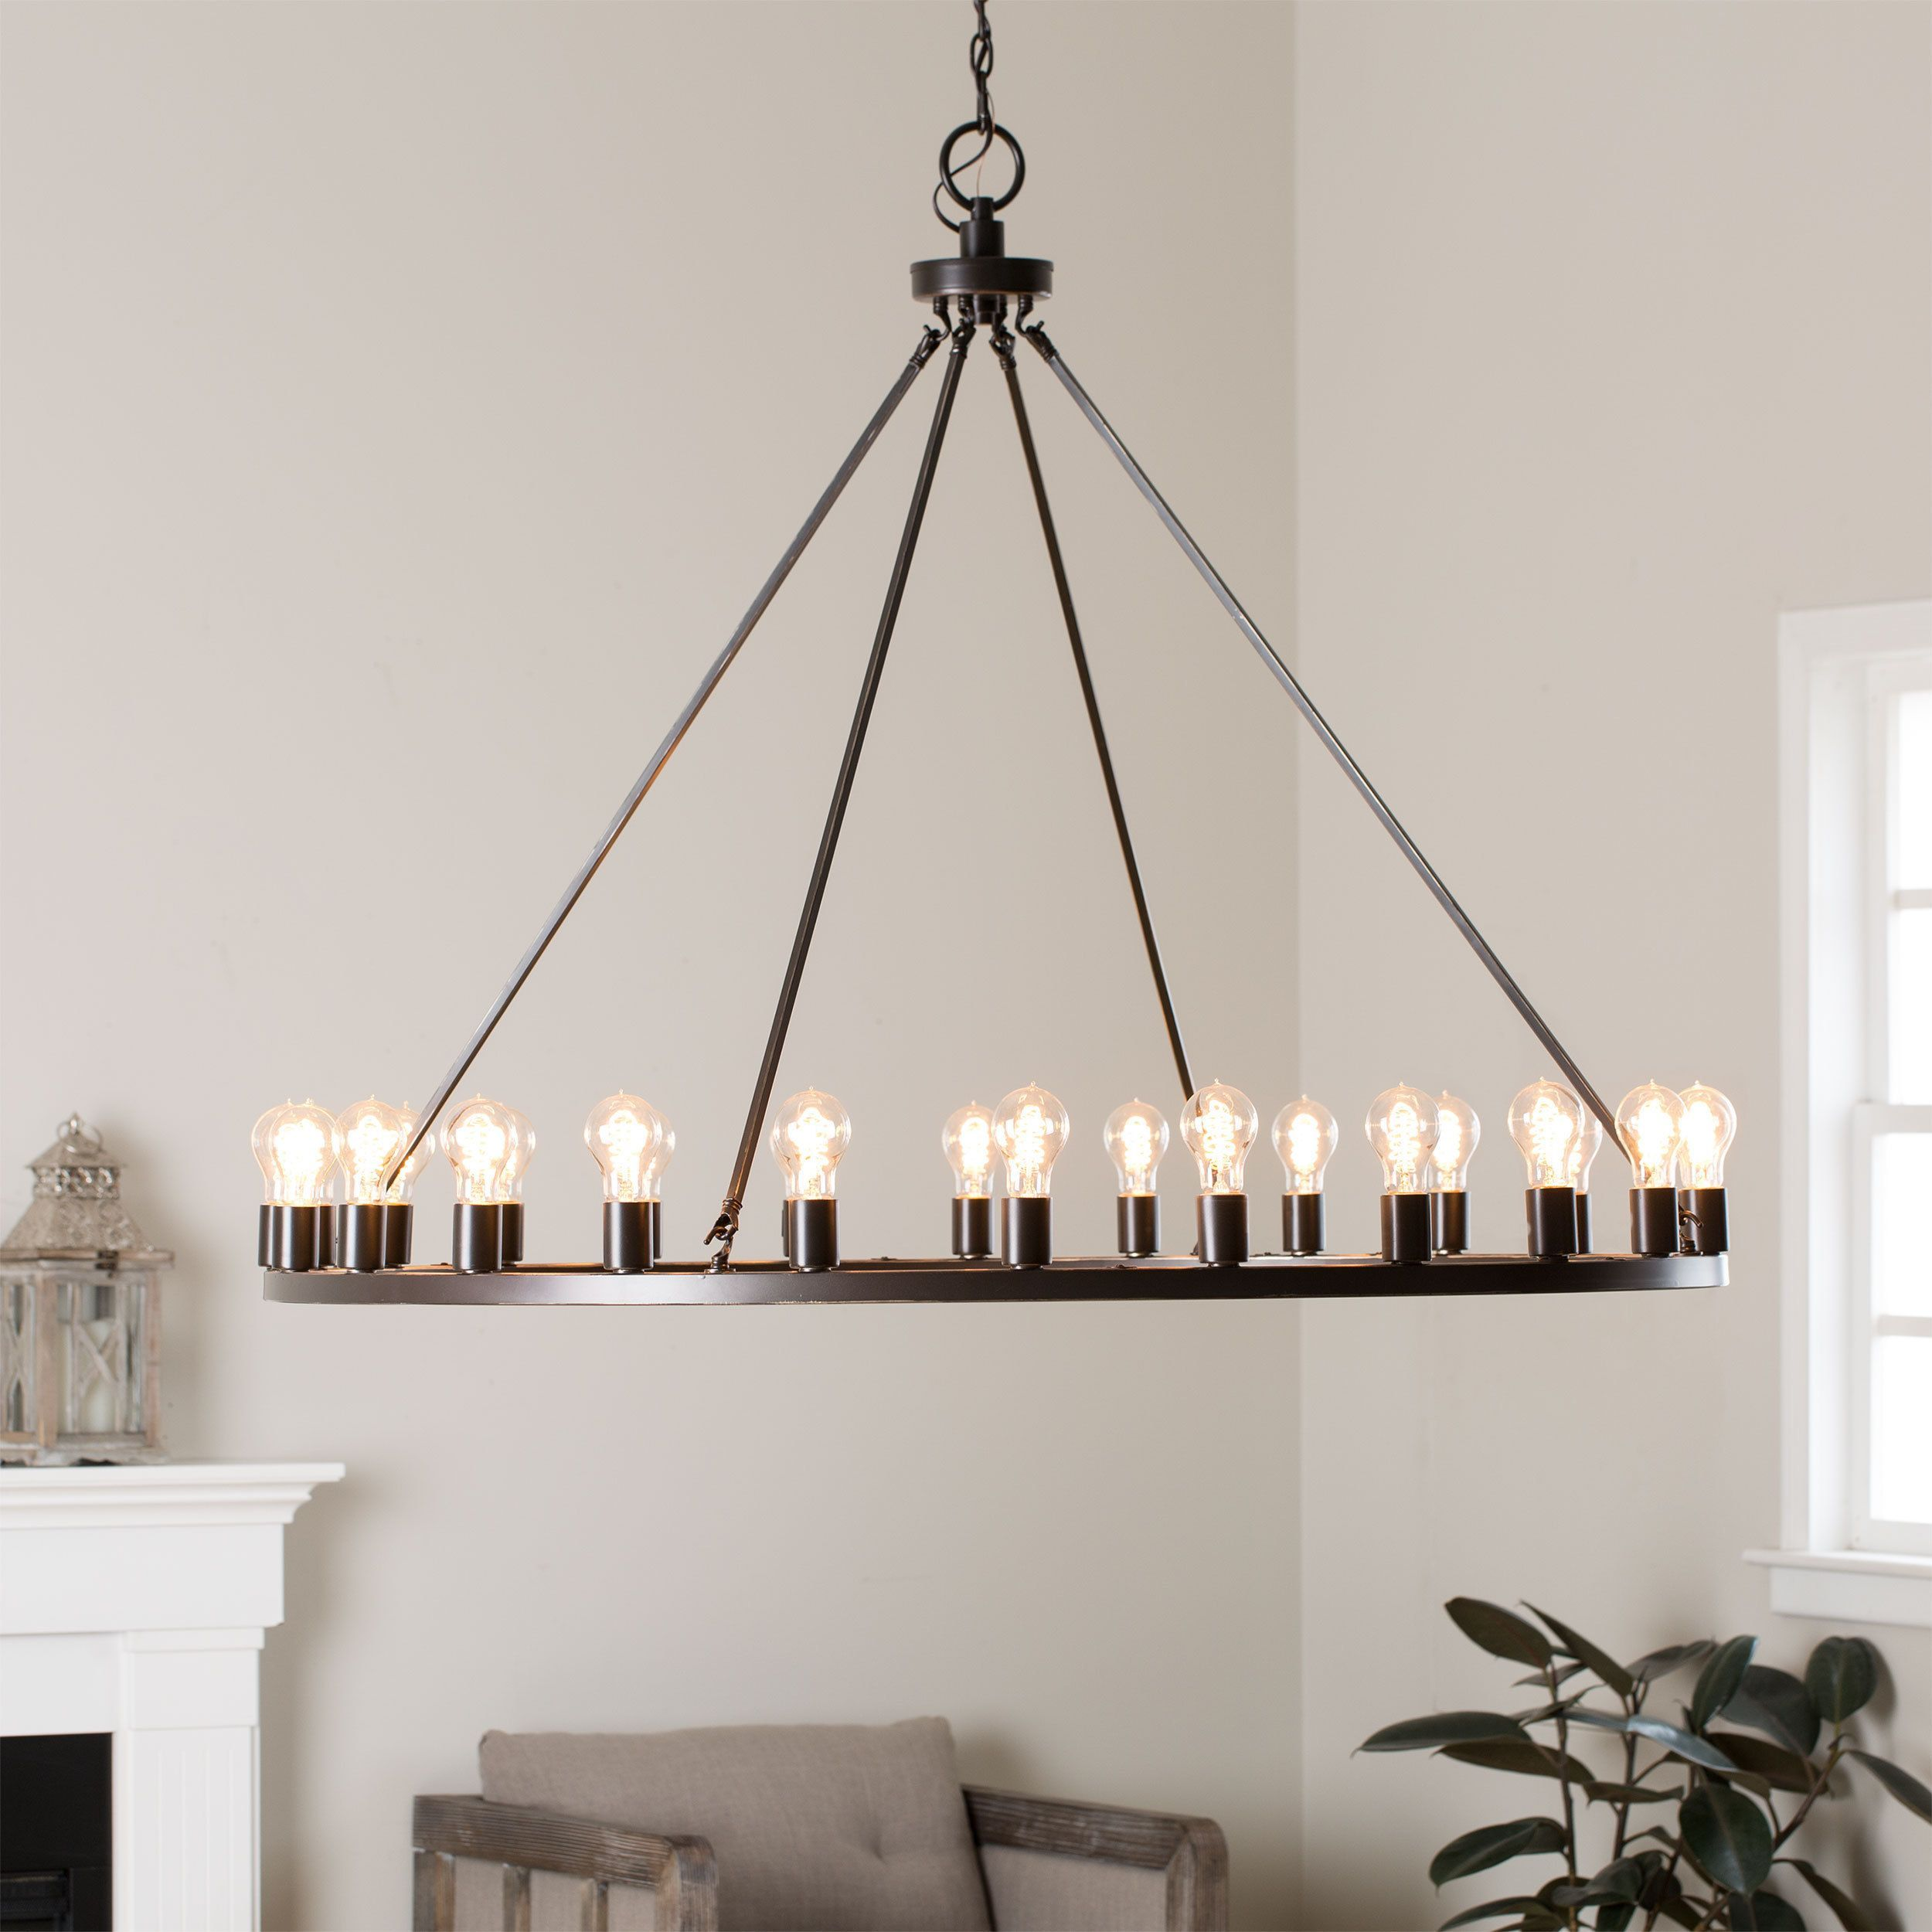 I found this copycat on overstock comparing it to the rh camino go beyond the ordinary when you install this chandelier in your living room this round chandelier features an oiled bronze finish with decorative light arubaitofo Choice Image